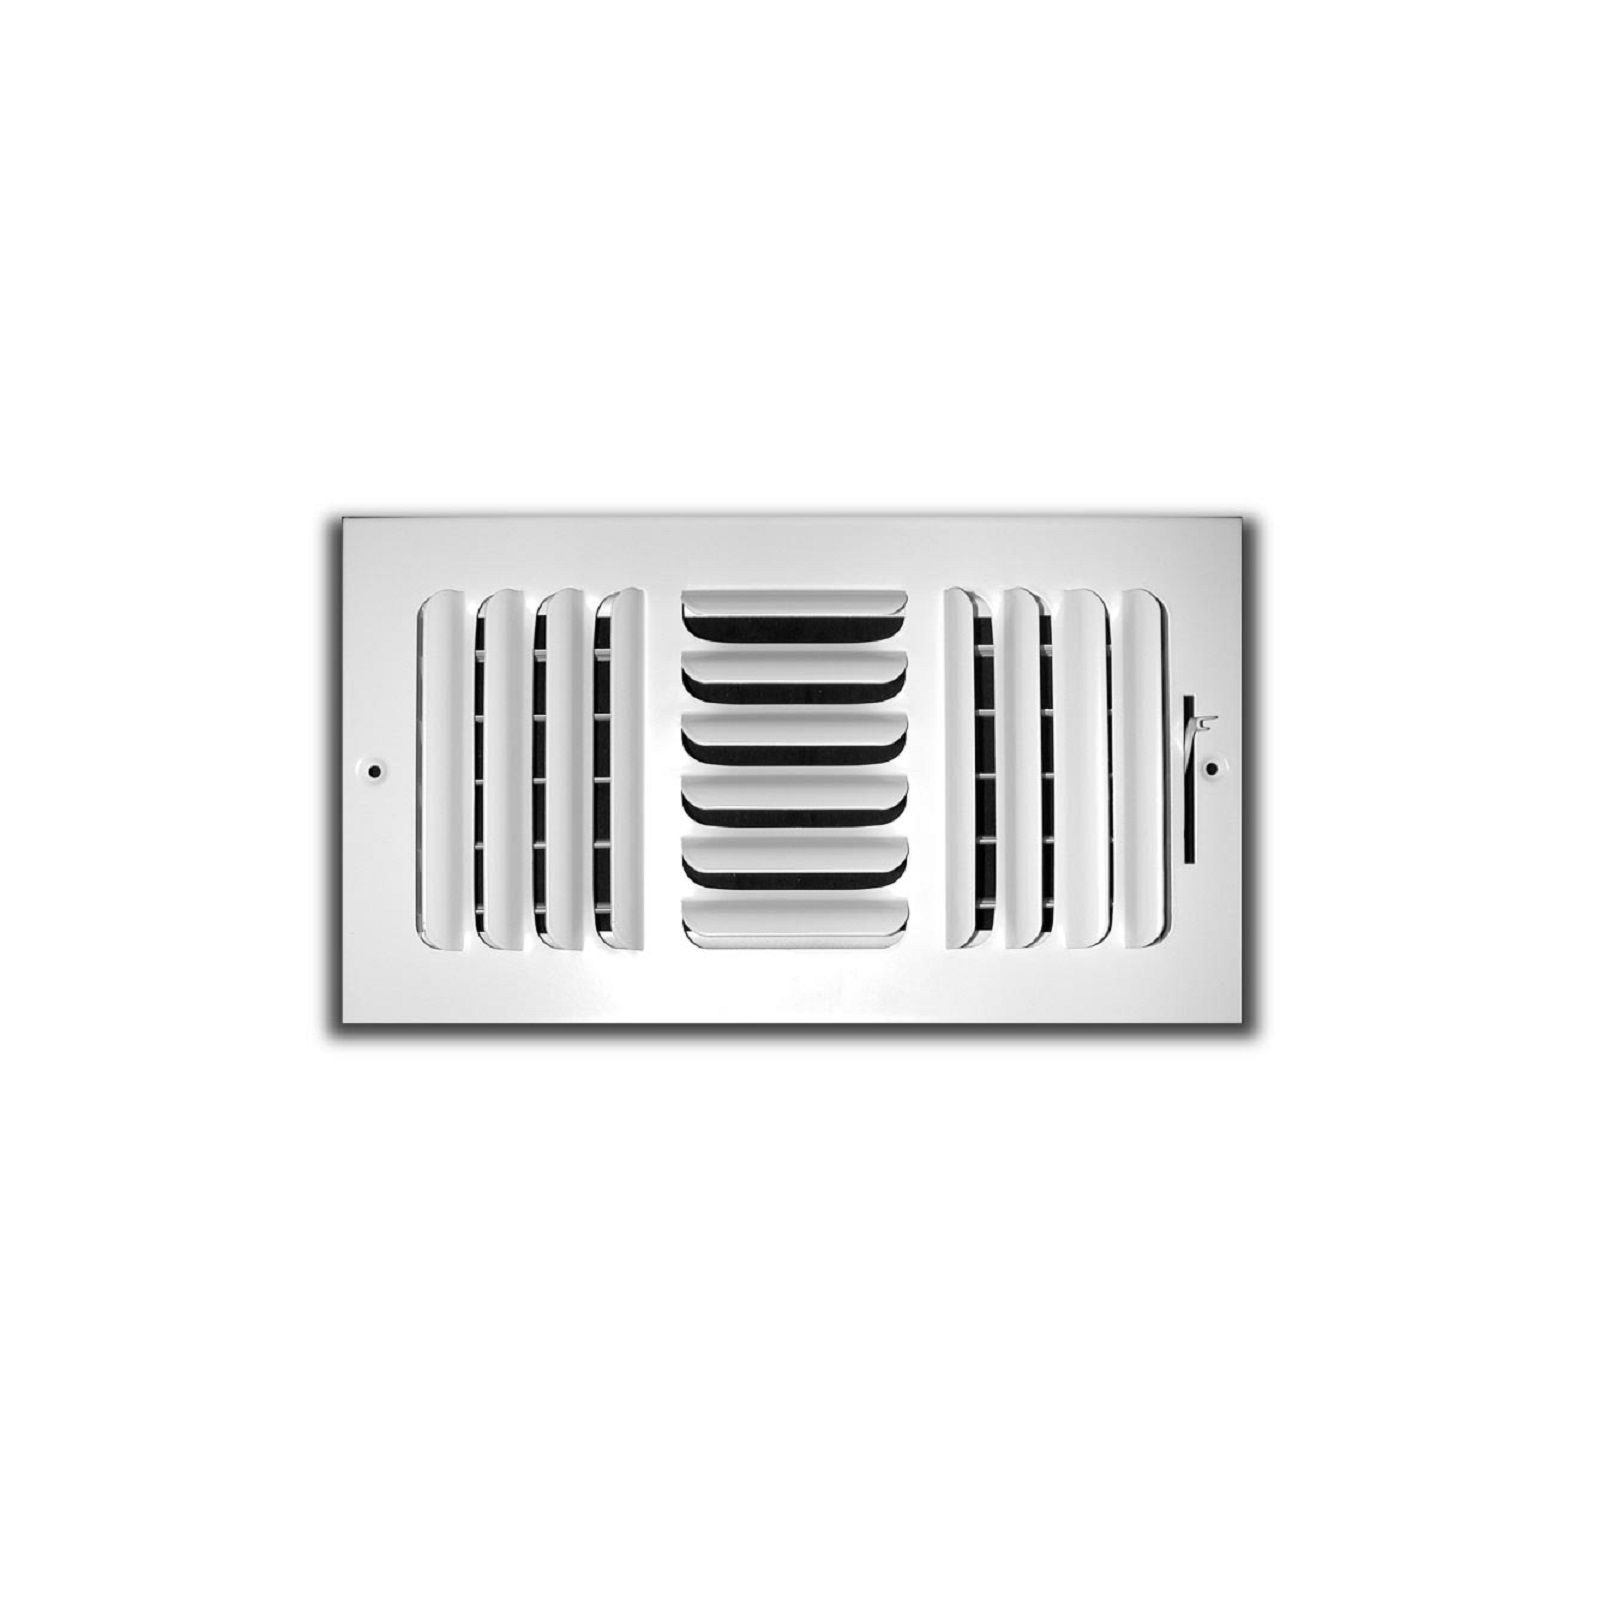 "TRUaire 403M 12X10 - Fixed Curved Blade Wall/Ceiling Register With Multi Shutter Damper, 3-Way, White, 12"" X 10"""